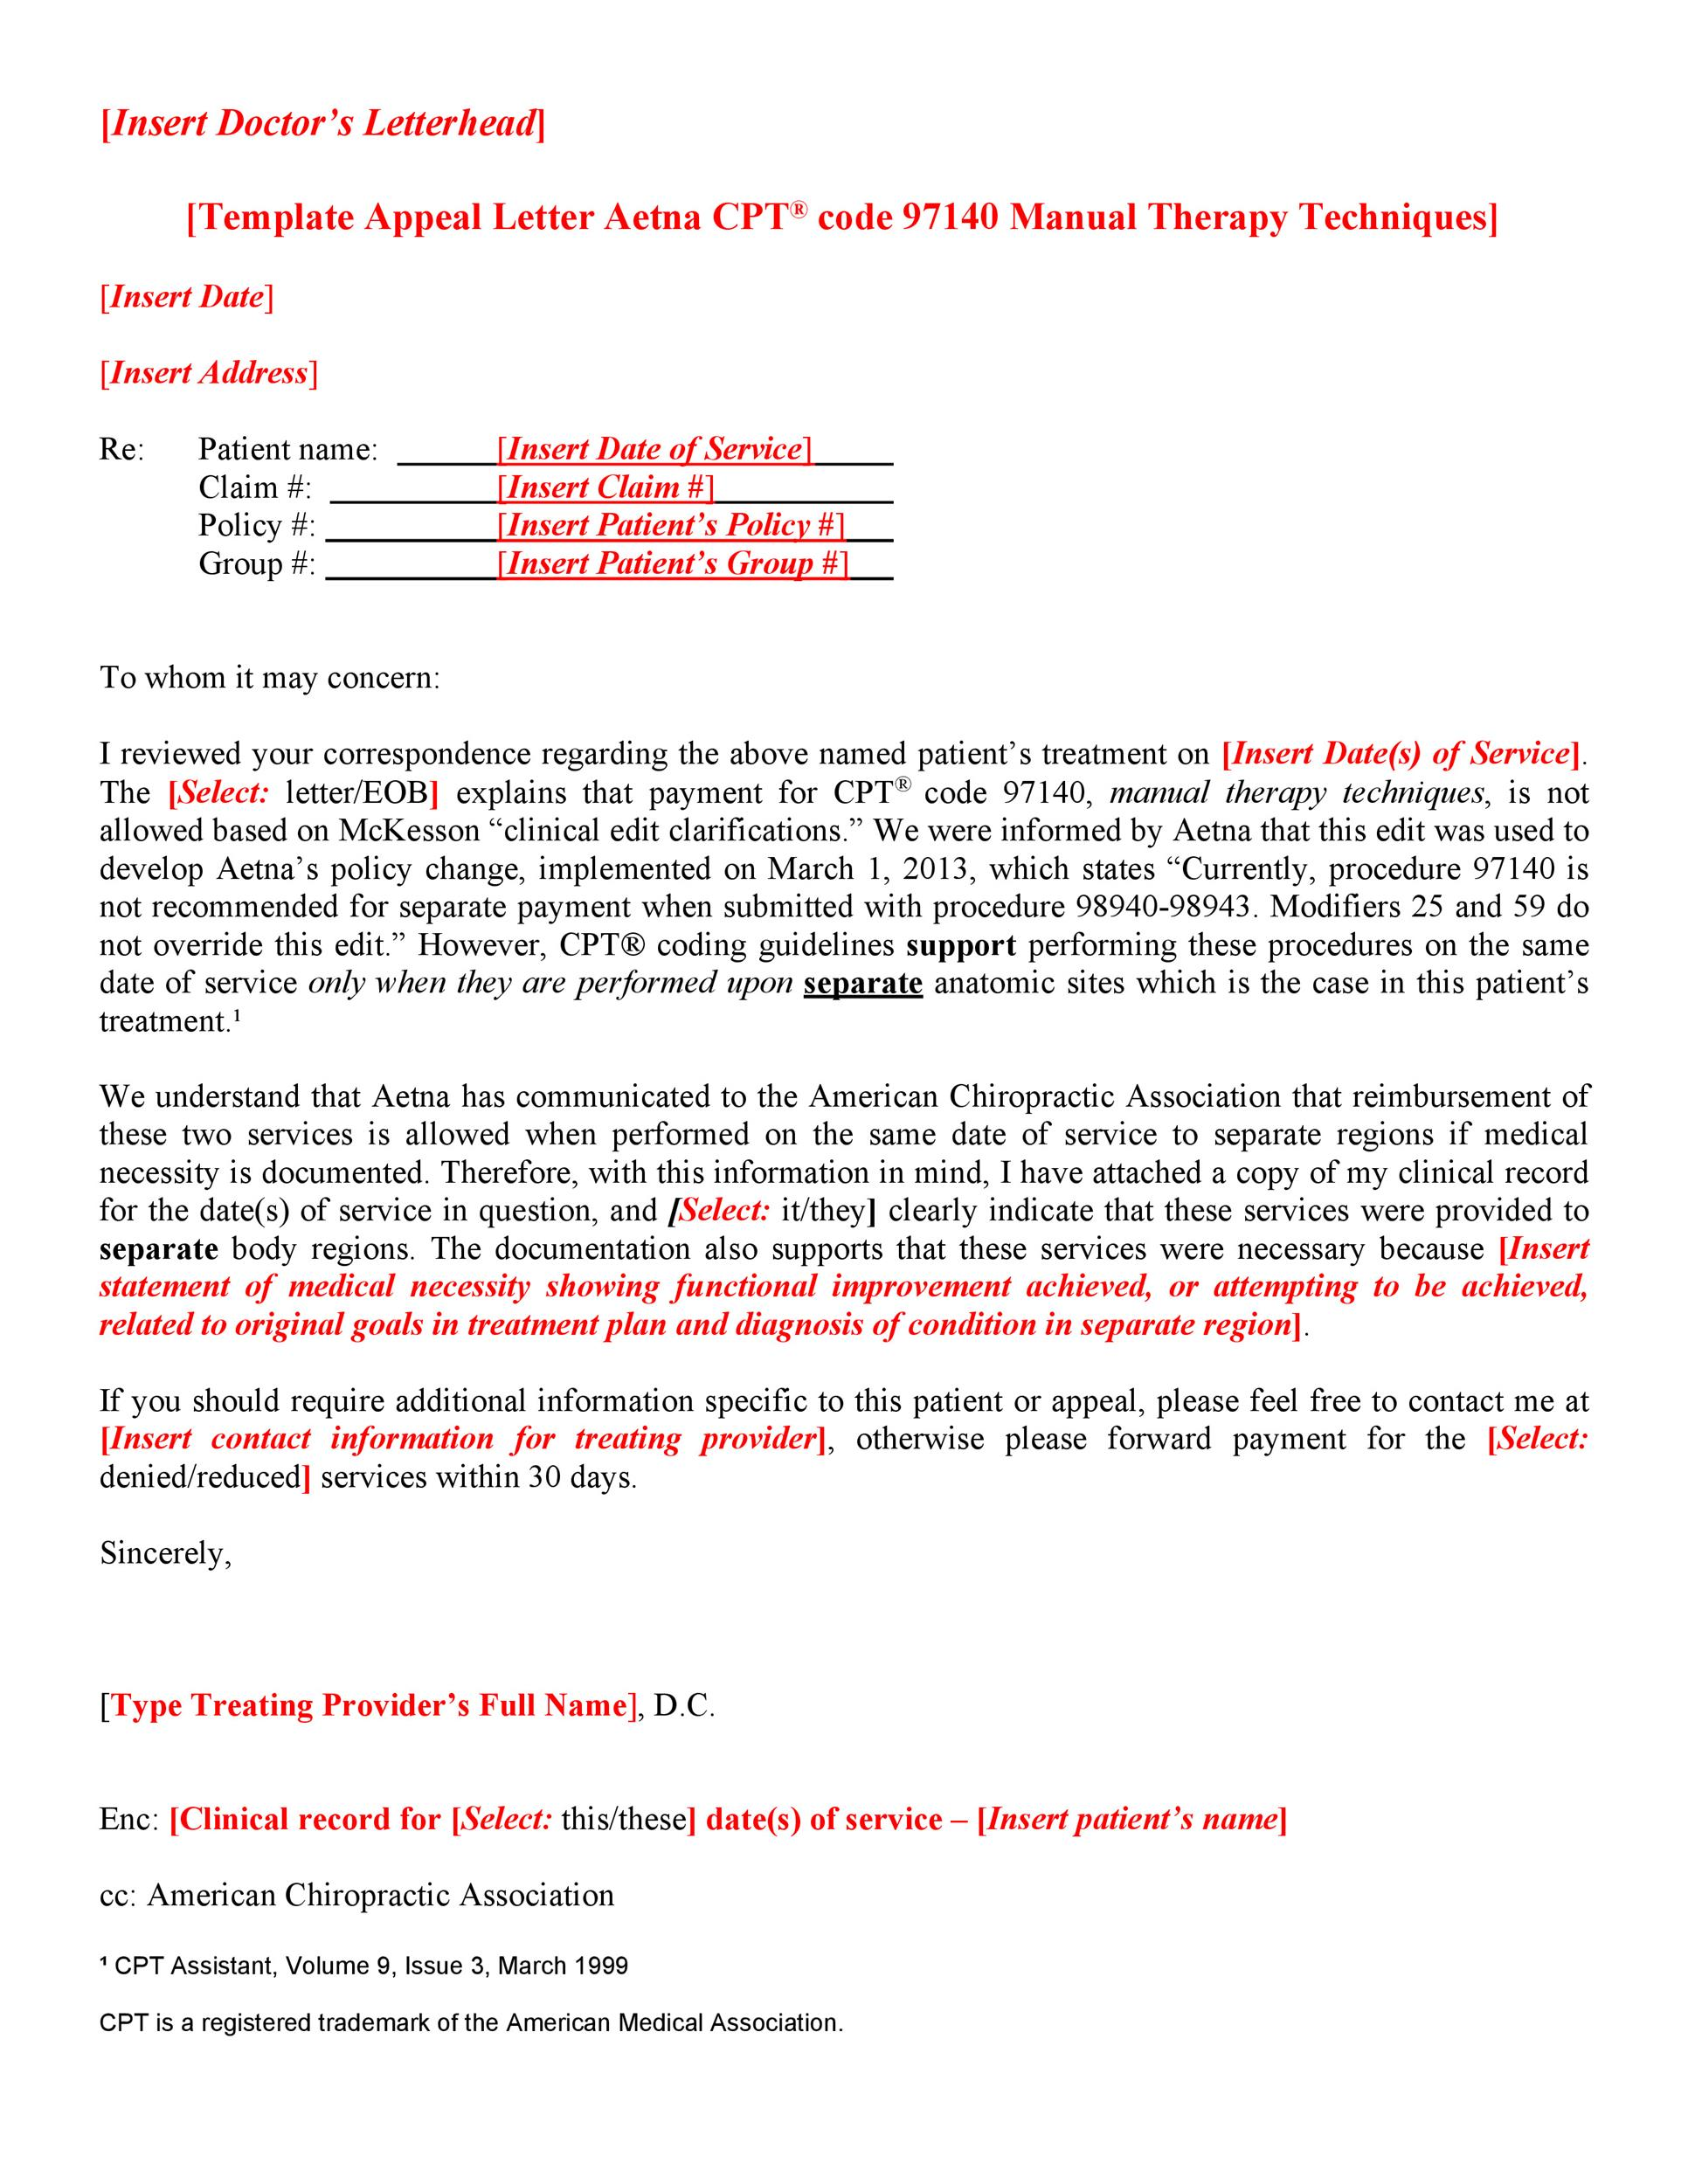 Free appeal letter 03